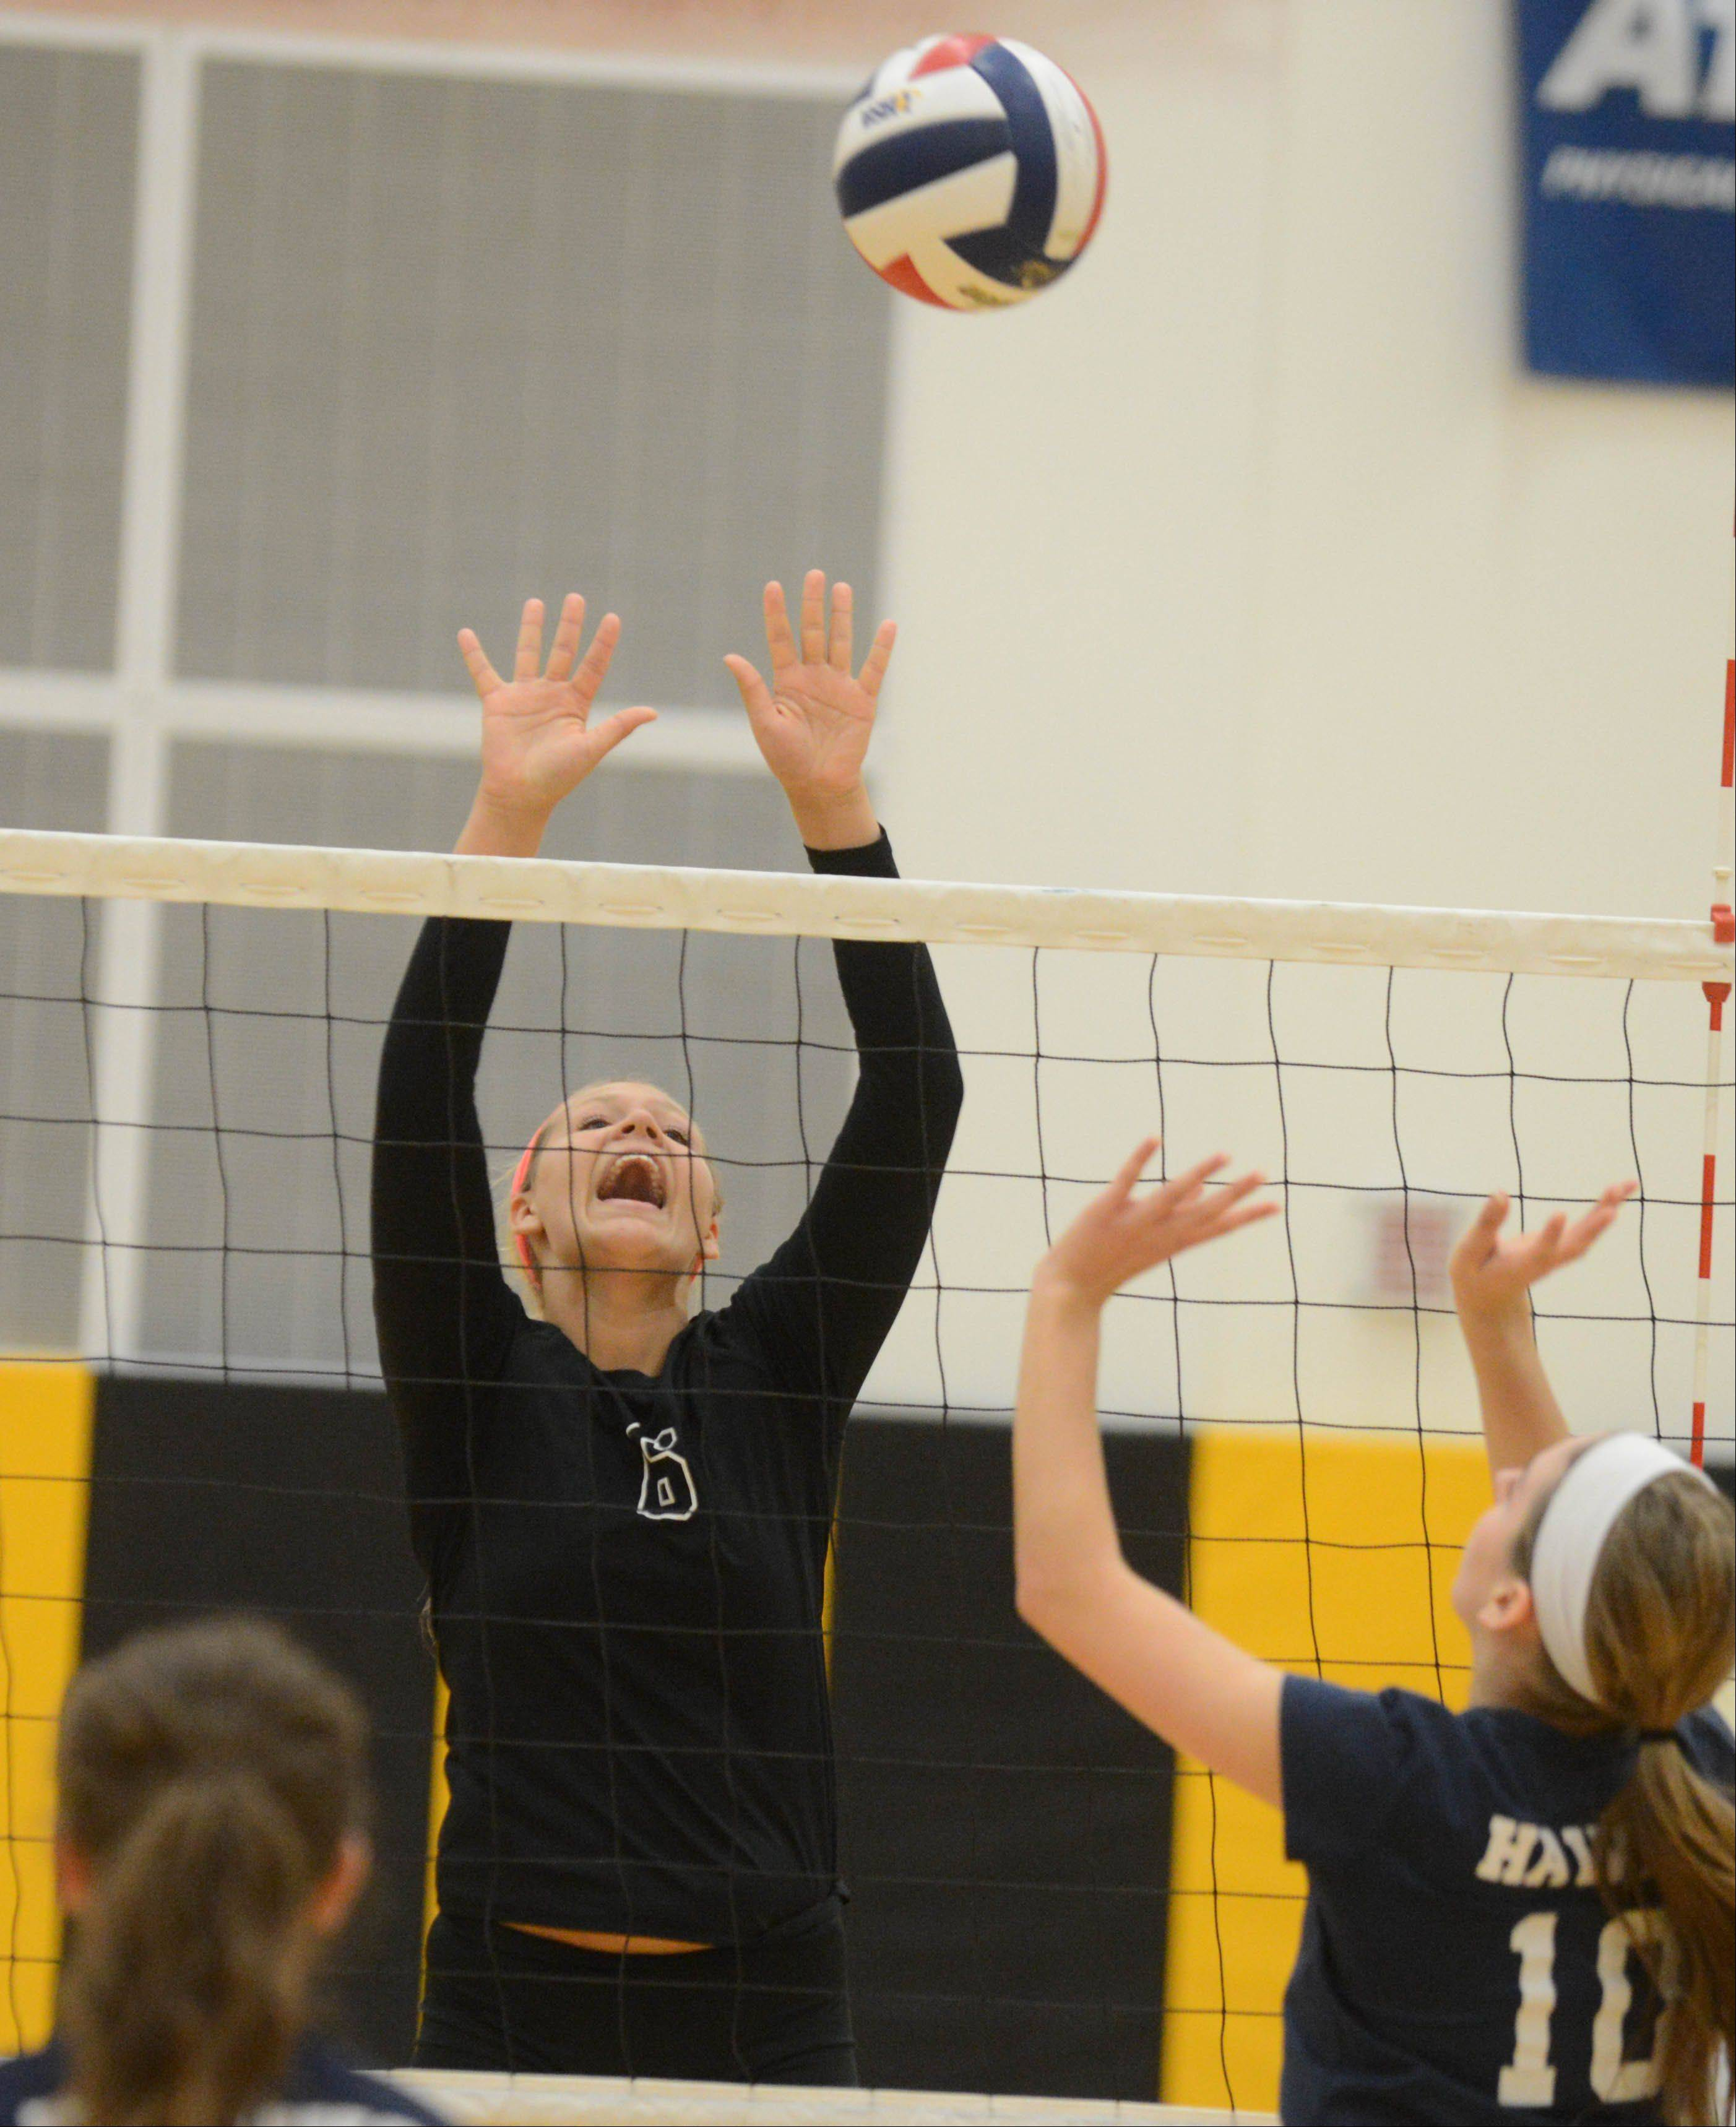 Paul Michna/pmichna@dailyherald.com Nina Tuszynski of Metea Valley goes up for hit during the Bartlett at Metea Valley girls volleyball game Tuesday.